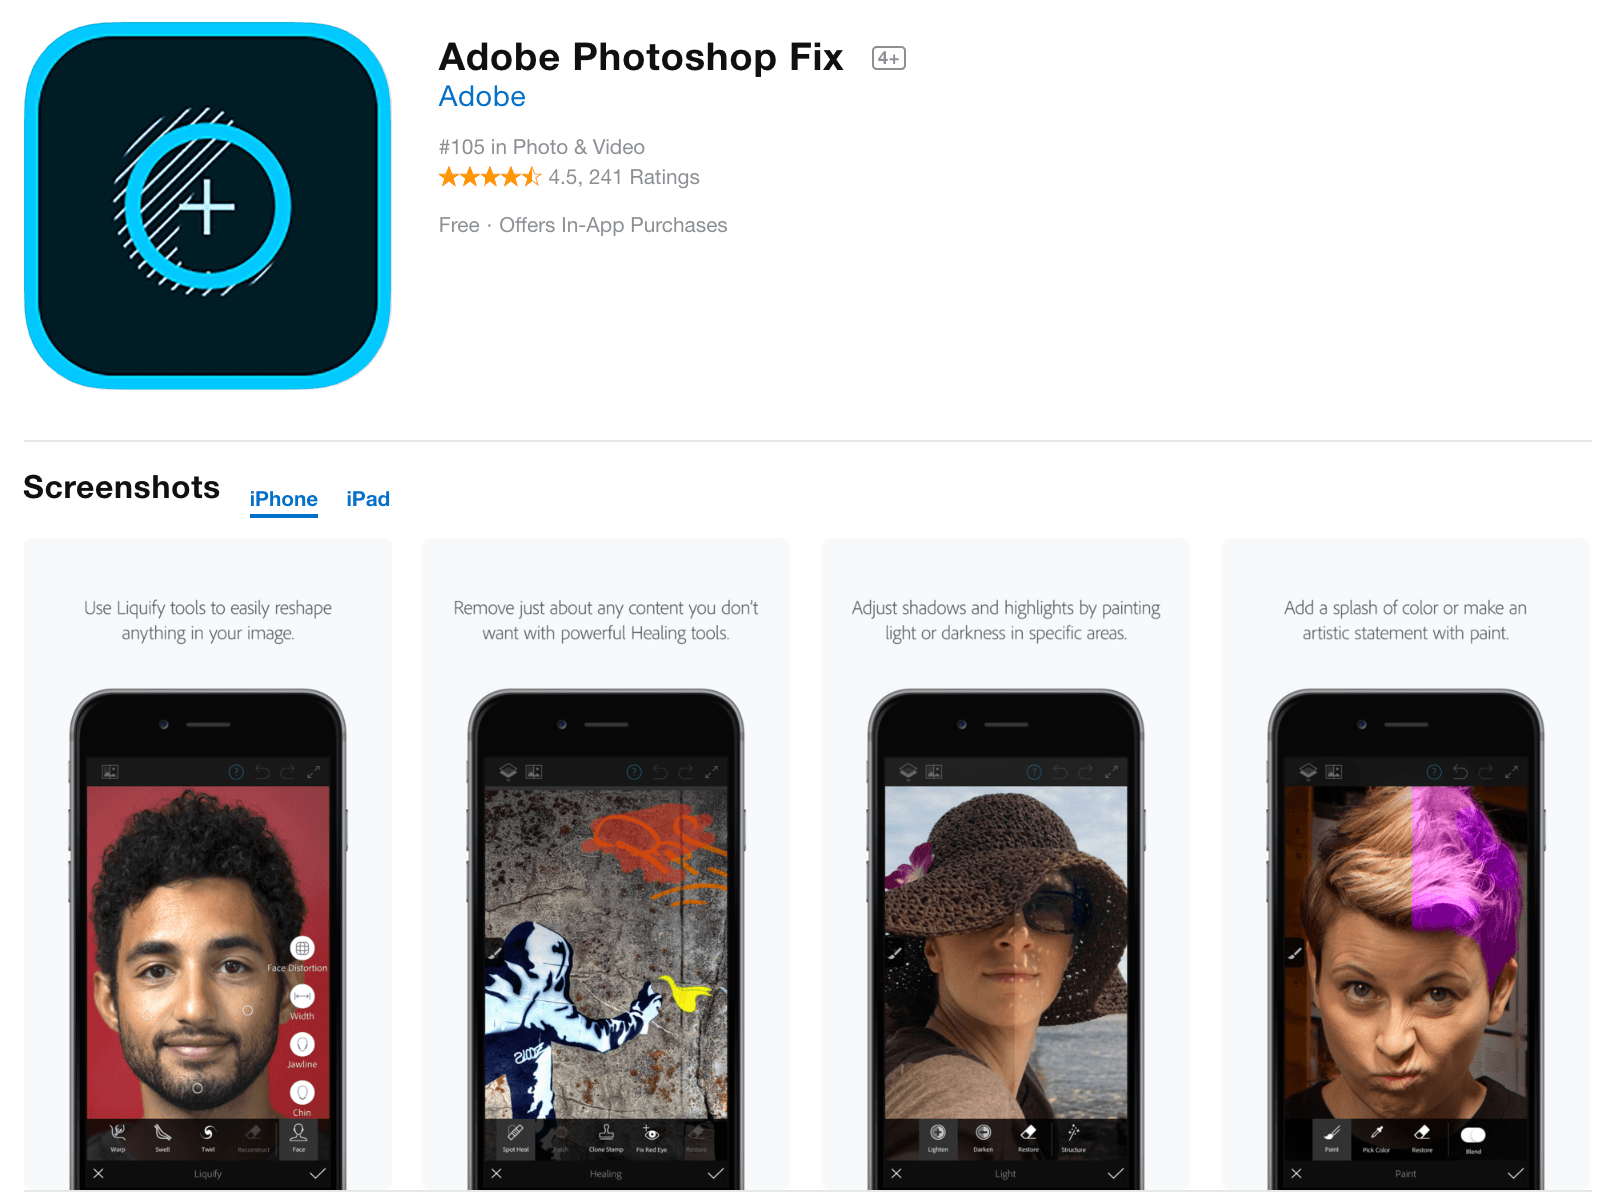 Adobe Photoshop Fix Photo Editor App